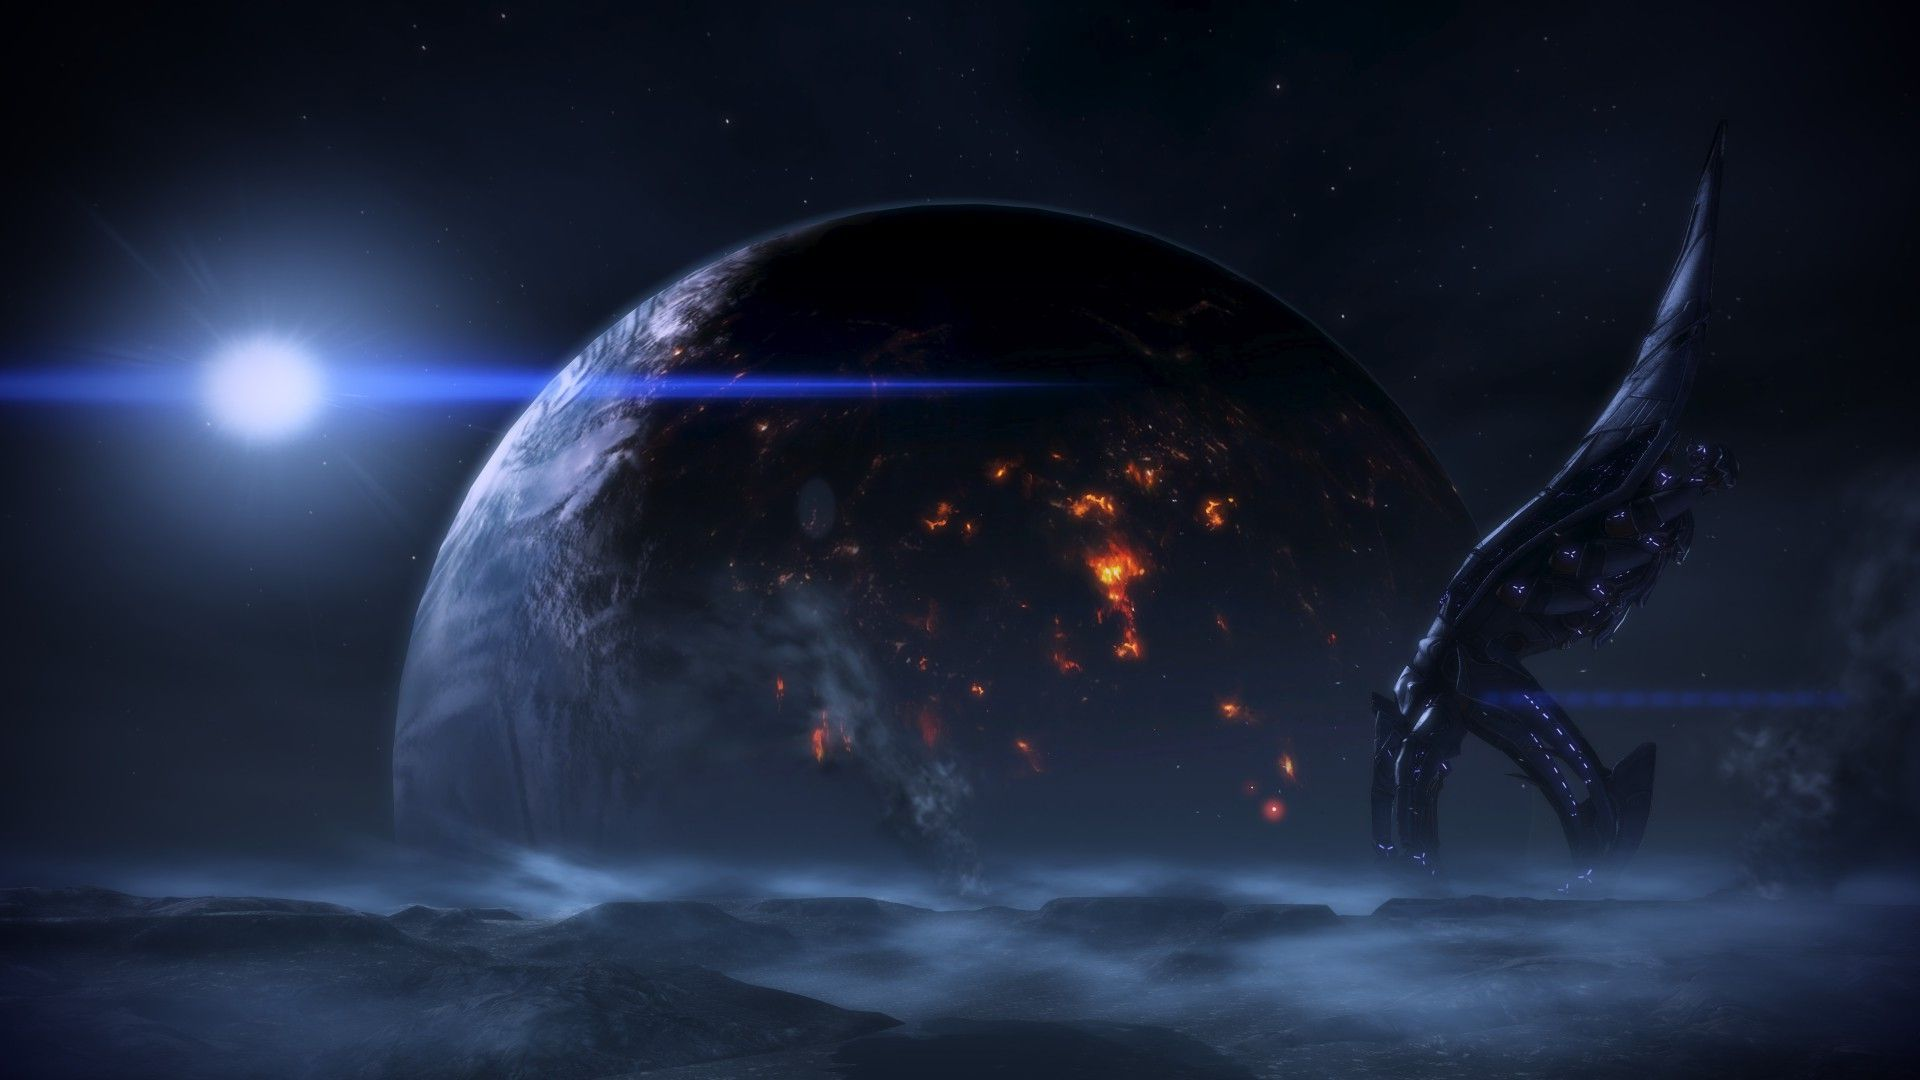 Mass Effect Wallpaper Hd - WallpaperSafari